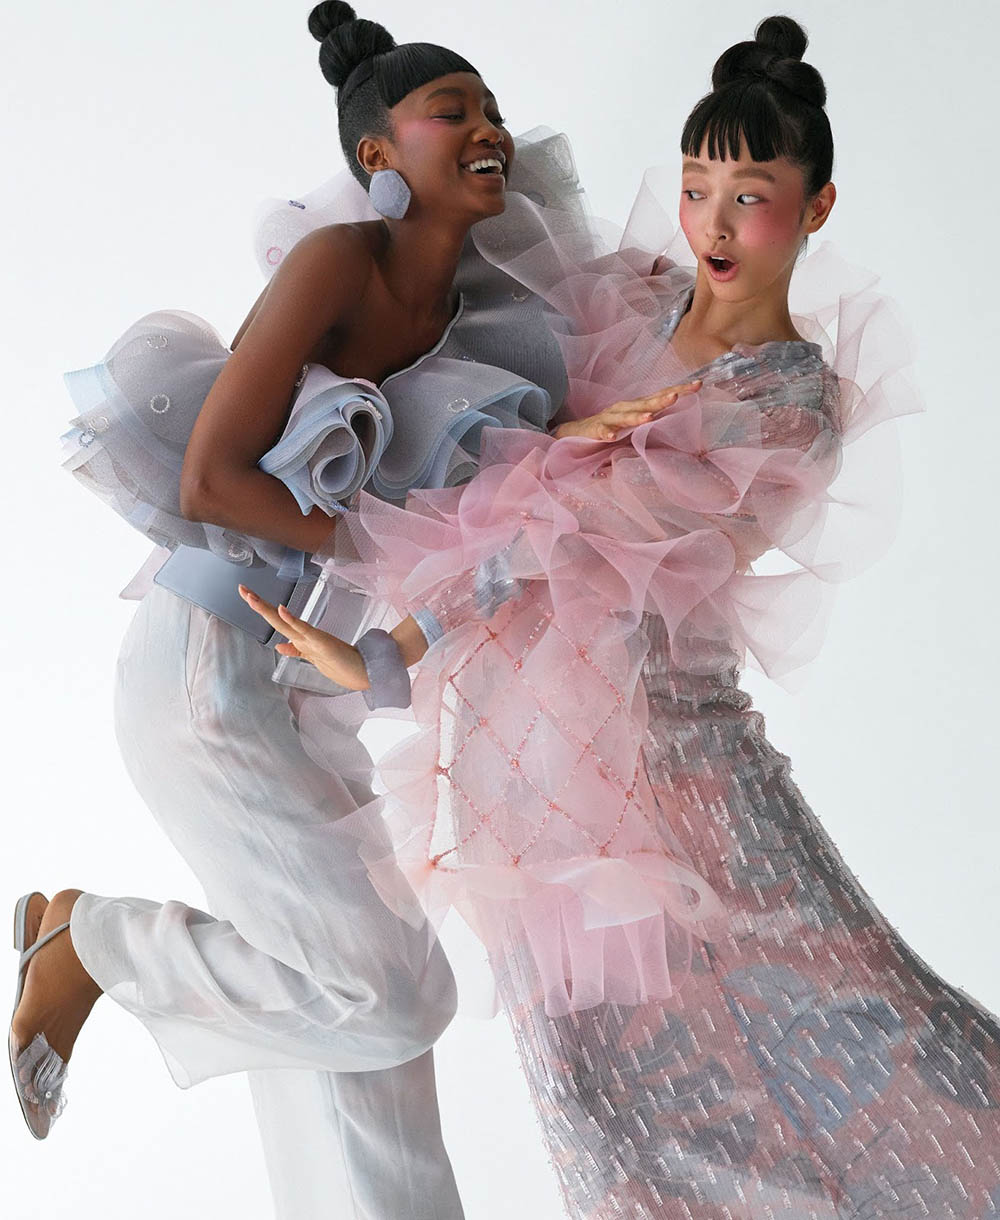 Eniola Abioro and Yuka Mannami by Daniel Clavero for Elle US January 2020